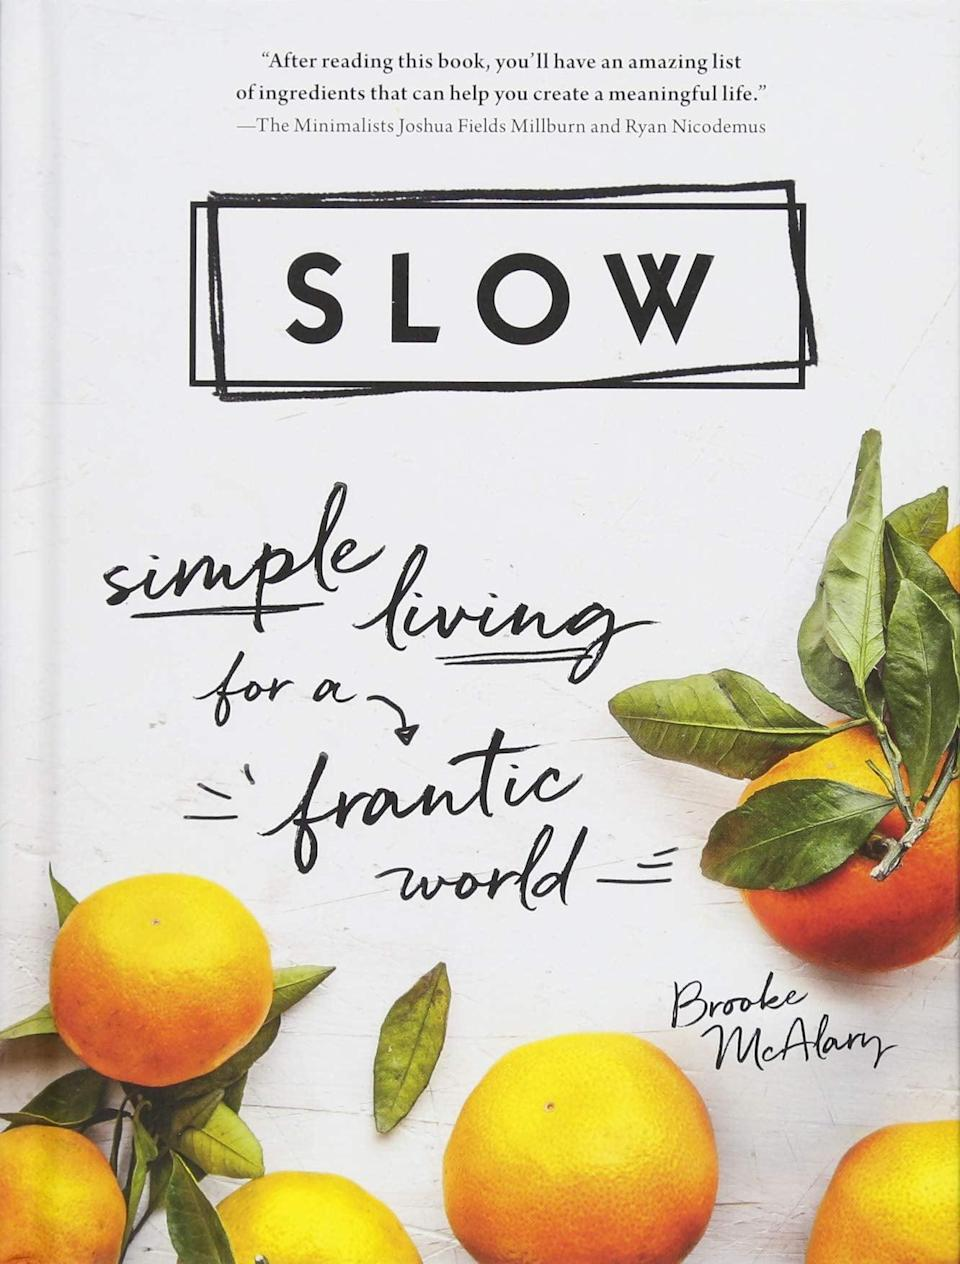 <p>What does slow living truly mean? Brooke McAlary illustrates this philosophy in her book, <b><span>Slow: Simple Living for a Frantic World</span></b>, by reintroducing ways to conduct a joyous and fulfilling life while disconnecting from the demands of giving and wanting more in a fast-paced world.</p>